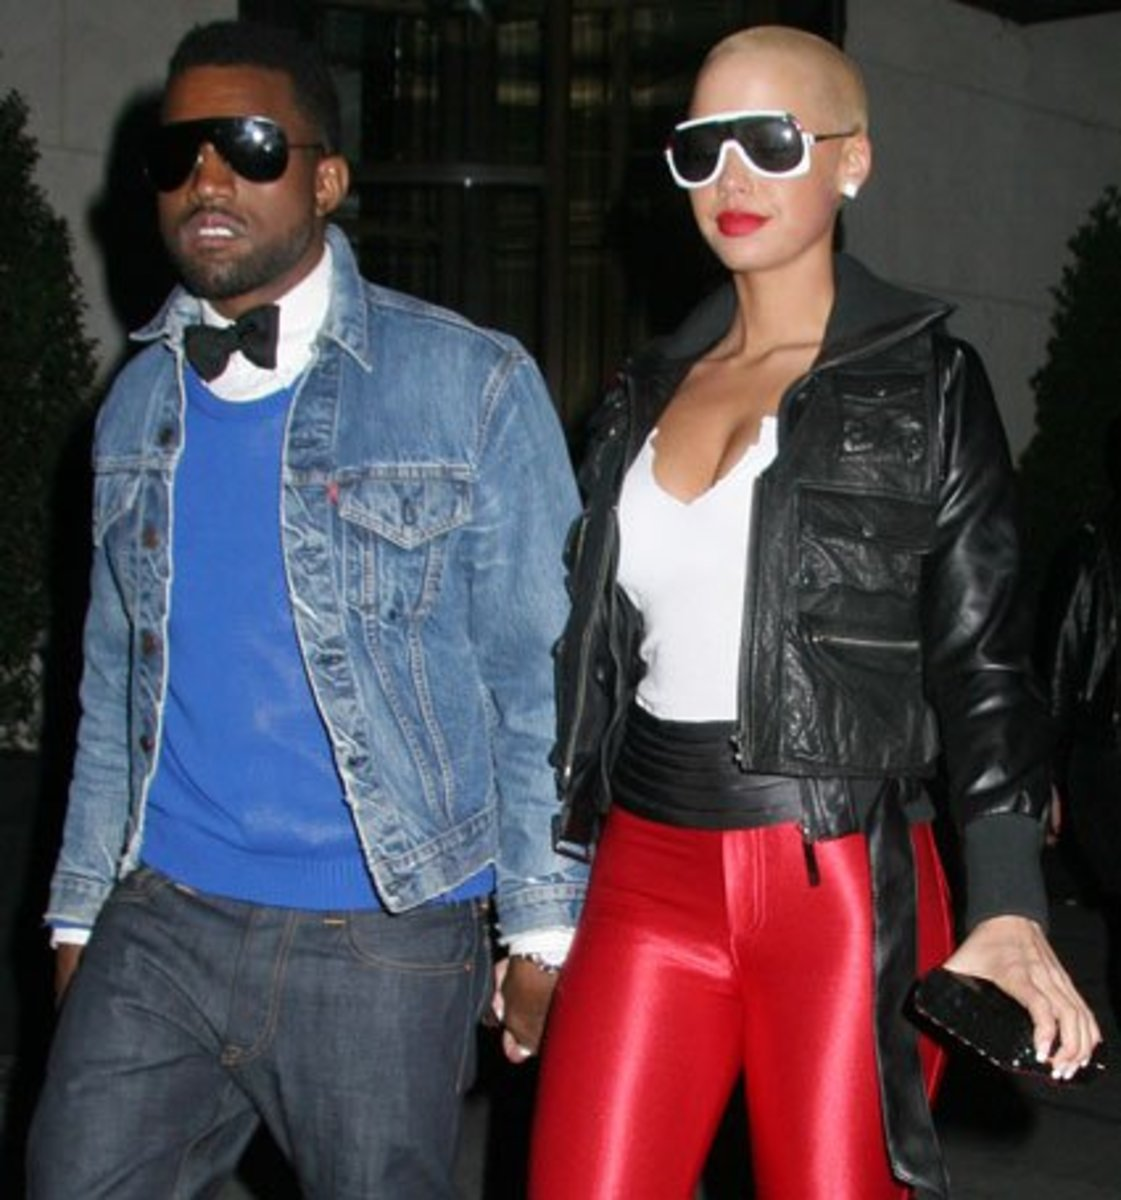 Kanye West and hig girlfriend Amber Rose